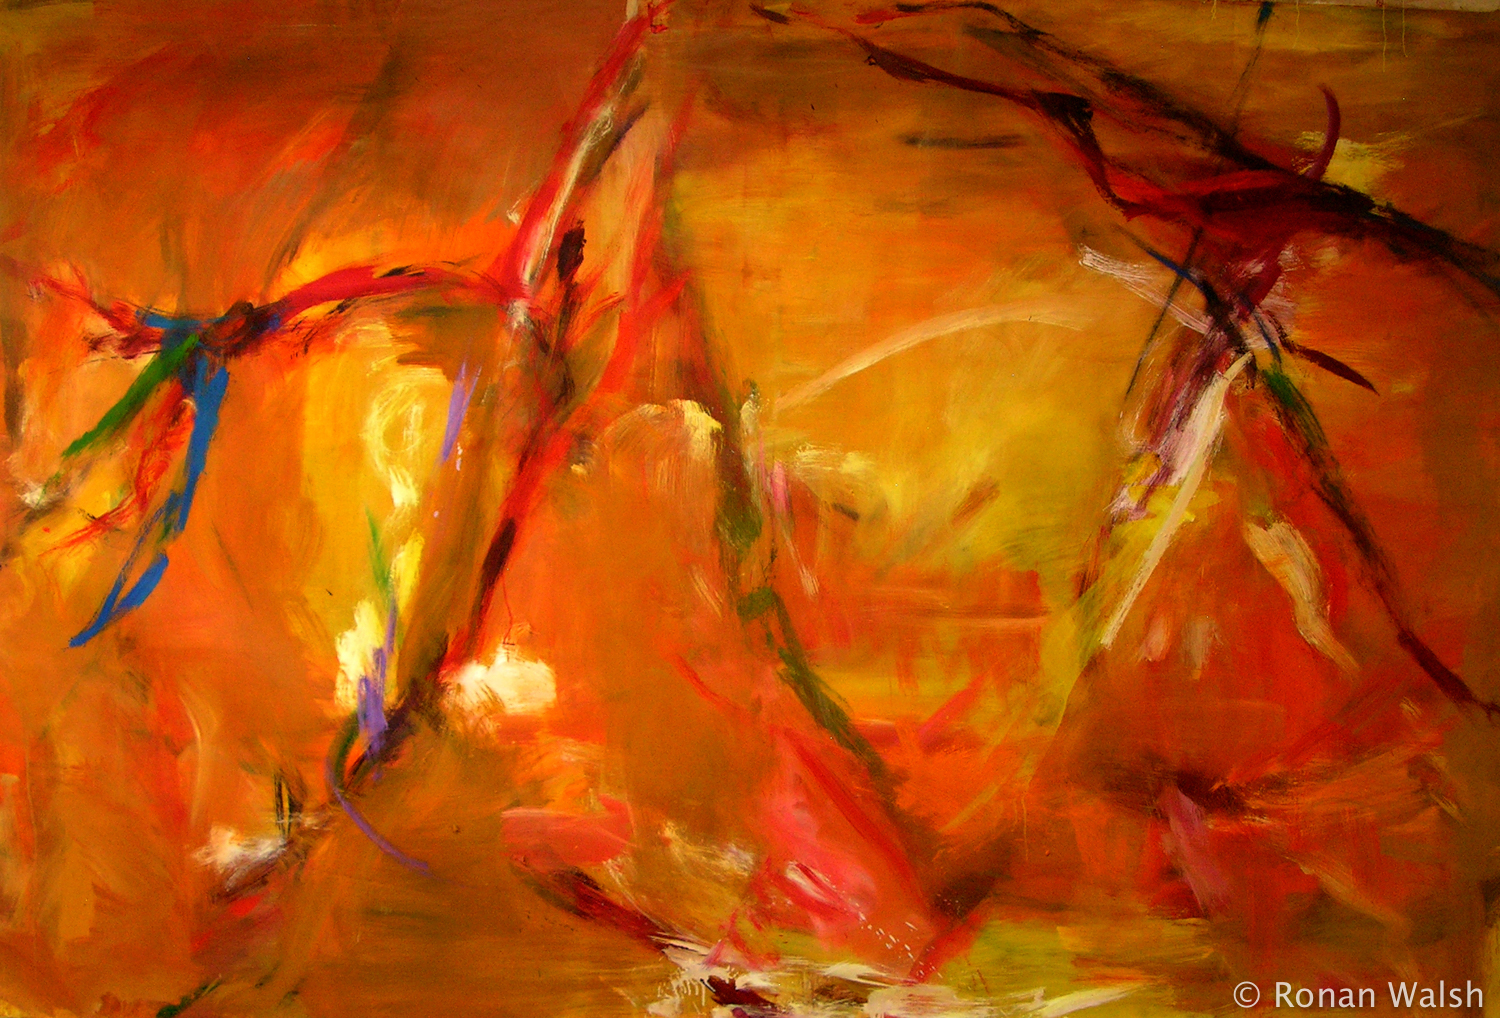 02-ronan-walsh-camargue-,orange-yellow-oil-on- canvas-64'x96ins-,2008-$36,000;alt text;abstract-art-painting-south-of-france-.jpg